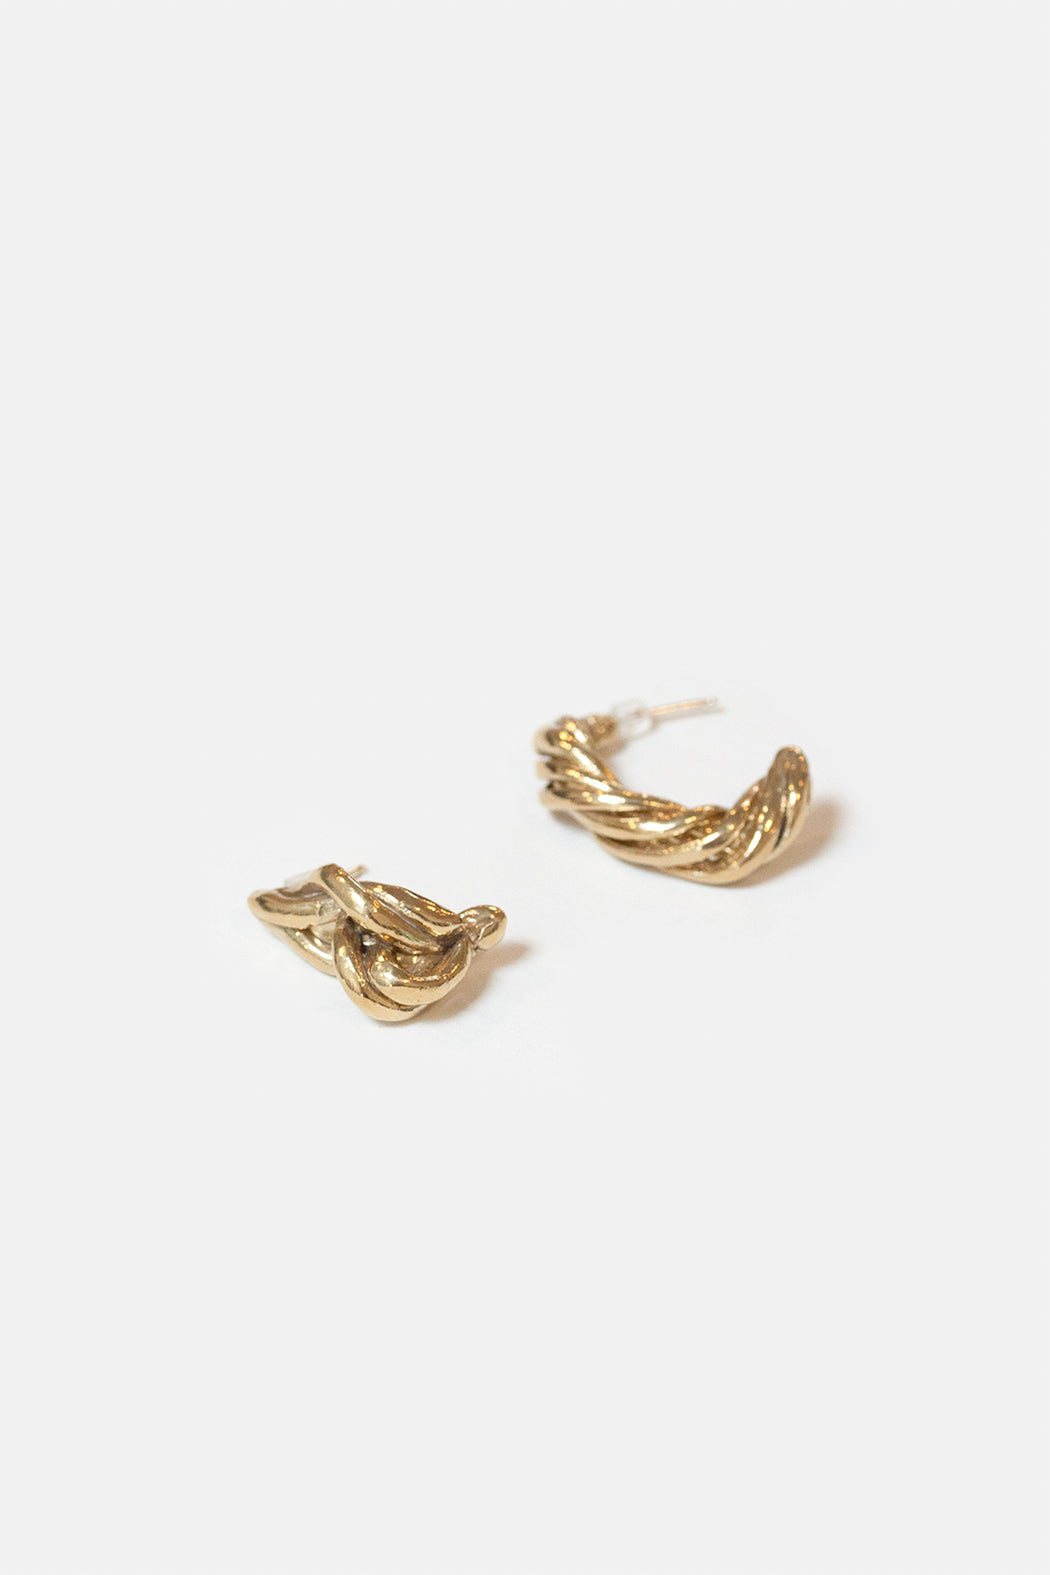 Eyde | Gal | Brass Mismatched Twist Earrings | Hazel & Rose | Minneapolis